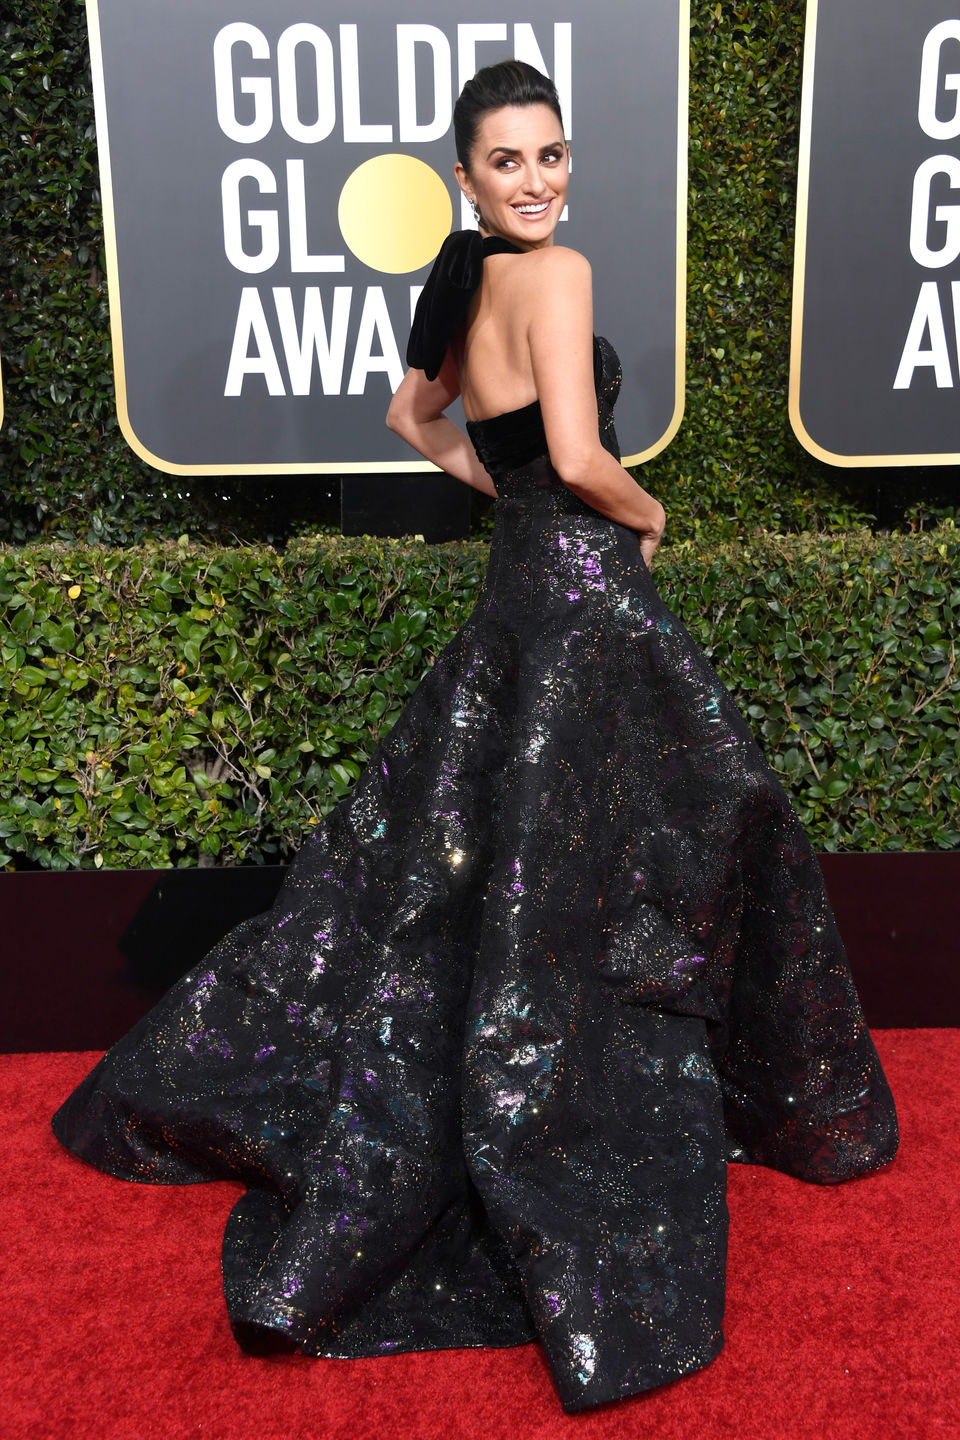 Golden Globes Best Dressed 2019 Golden Globes 2019: Best and worst dressed from the red carpet